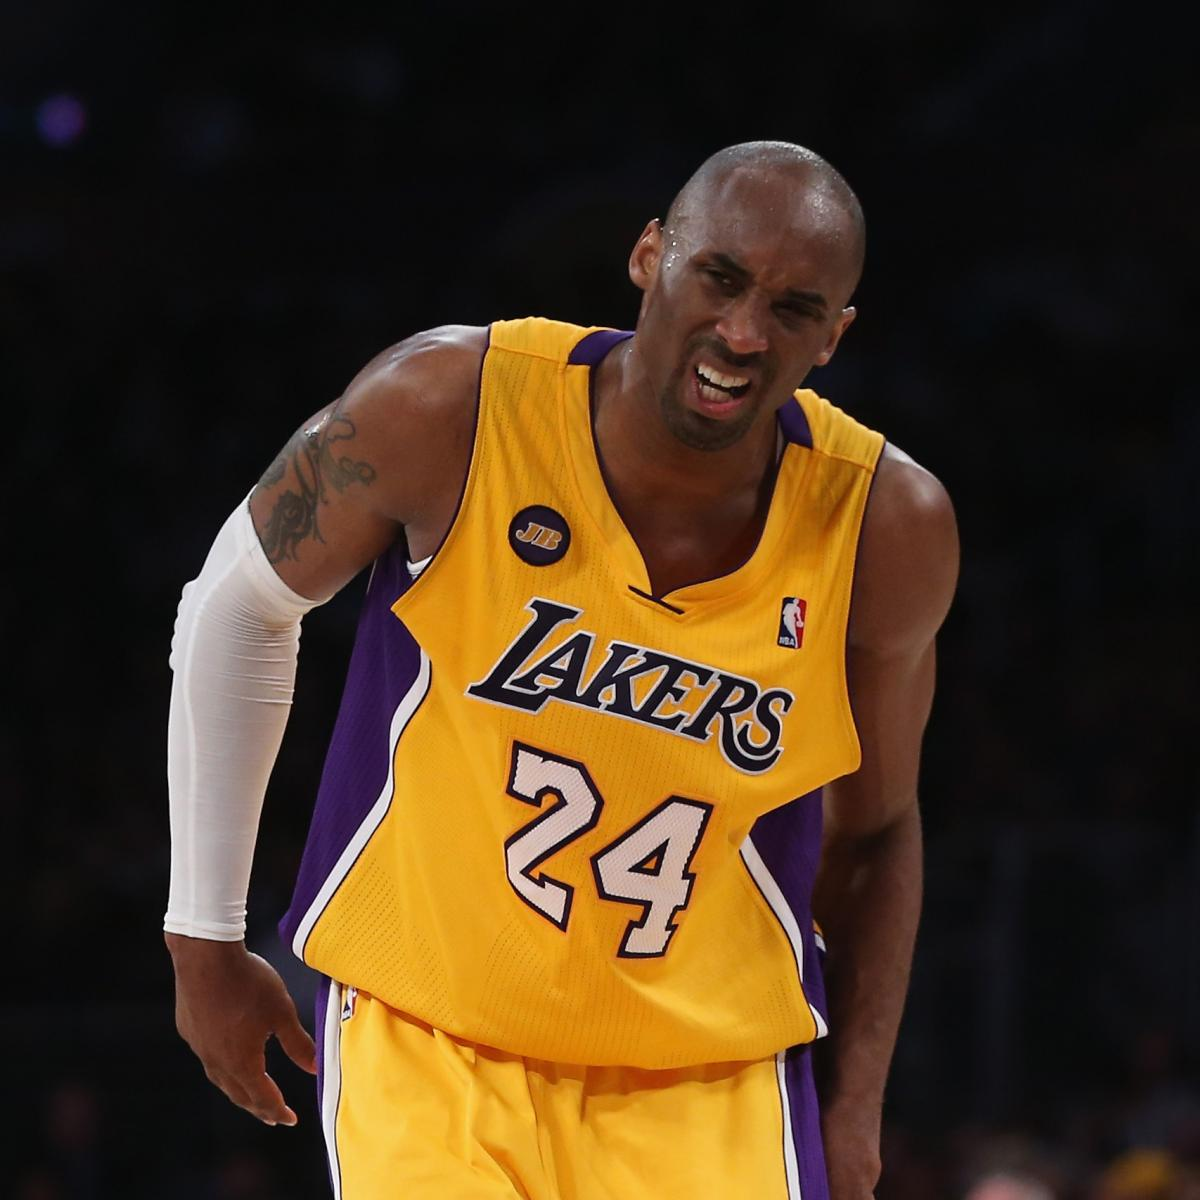 Lakers News: Kobe Bryant's Injury One Of The Saddest